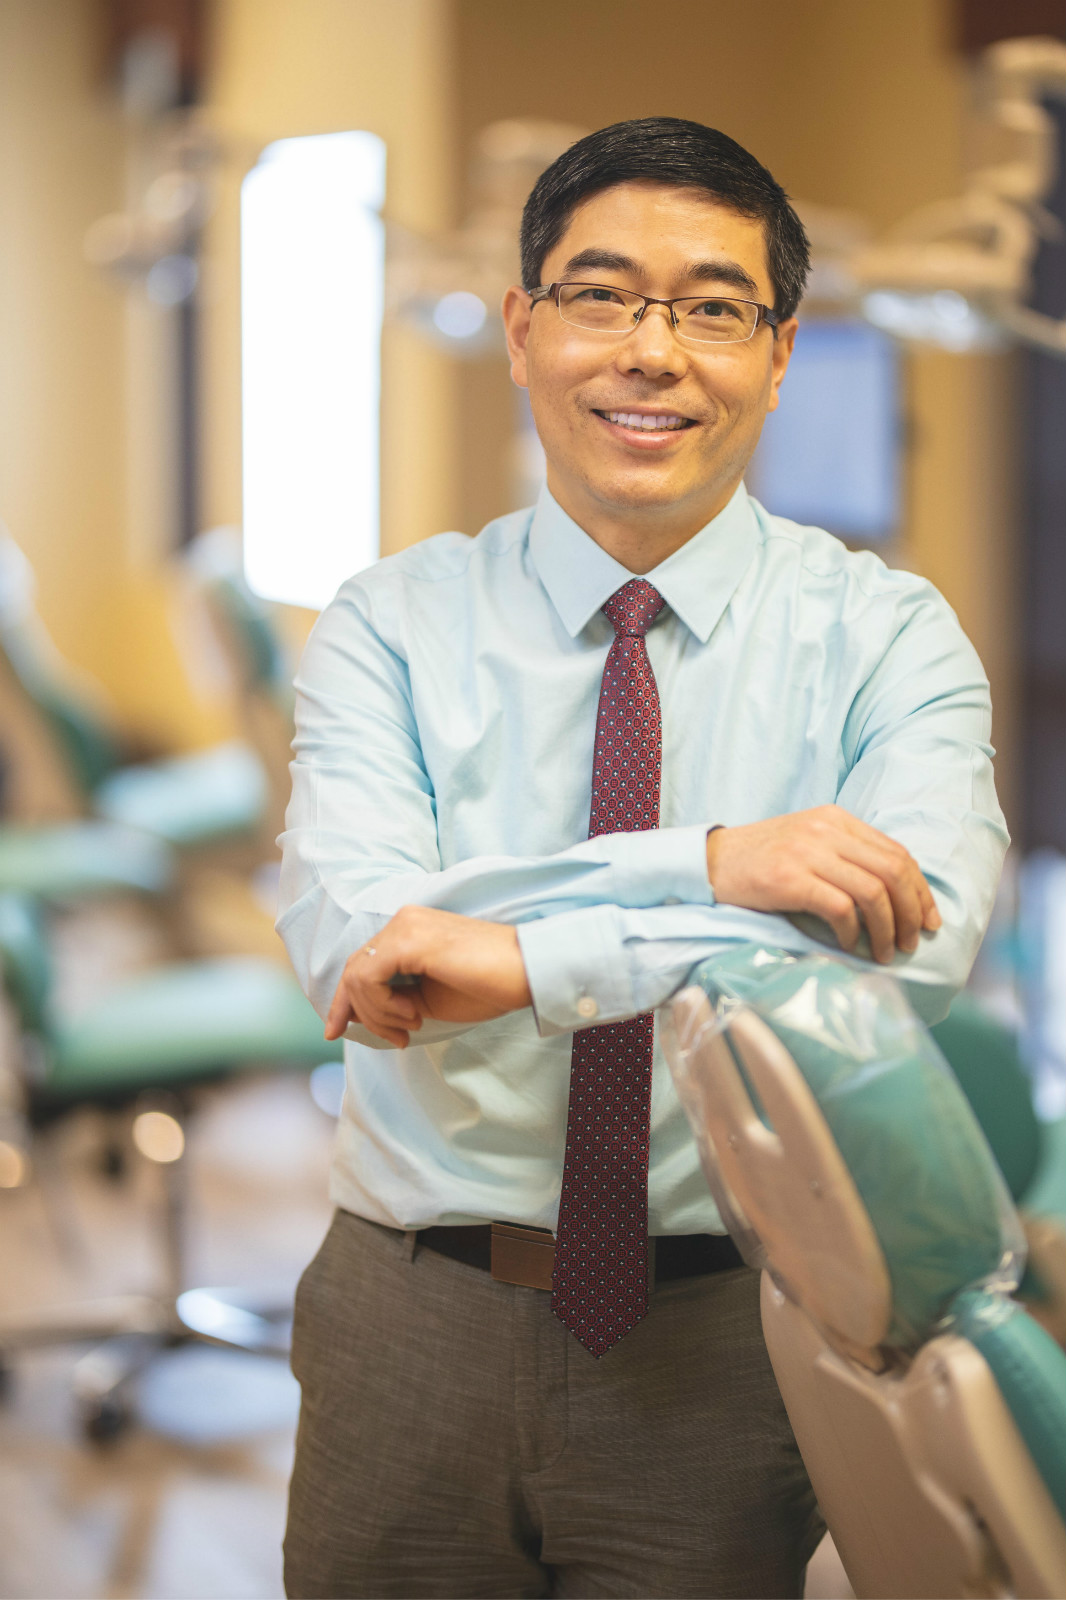 Dr. Jianfeng Gu Introduces His Latest Orthodontic Services